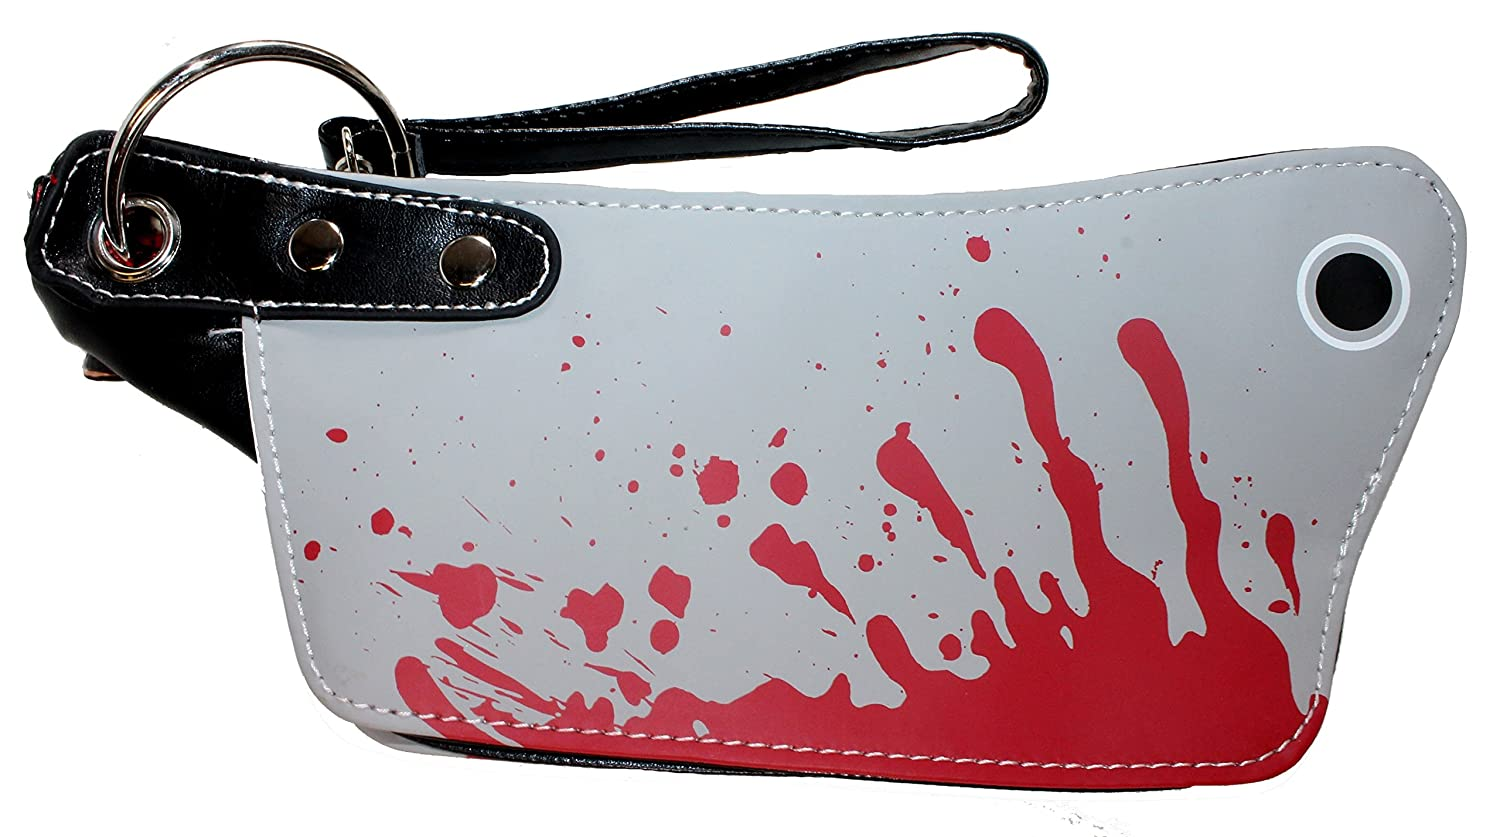 mini bloody cleaver clutch purse halloween handbag kreepsville horror fashion handbags amazoncom - Halloween Handbag